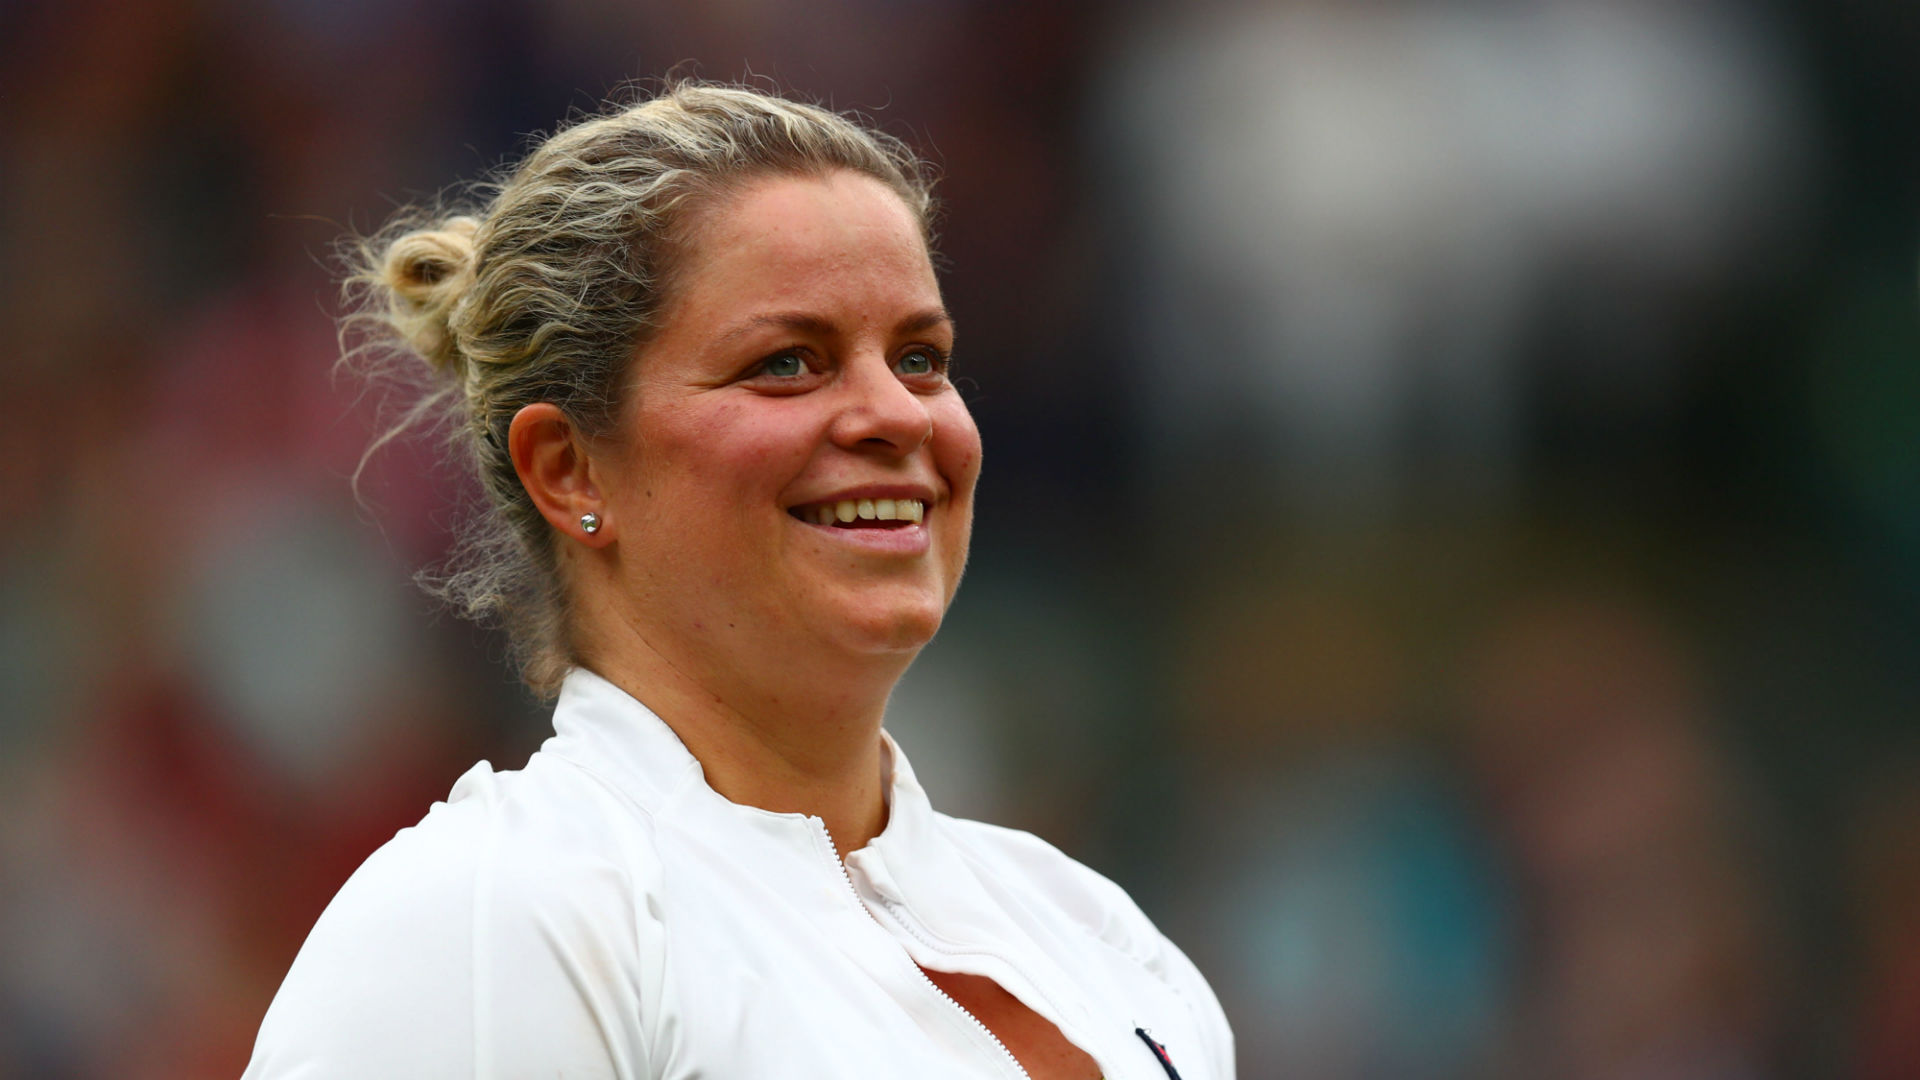 Kim Clijsters, the former world number one, has announced plans for a surprise WTA return after a seven-year absence from tennis.